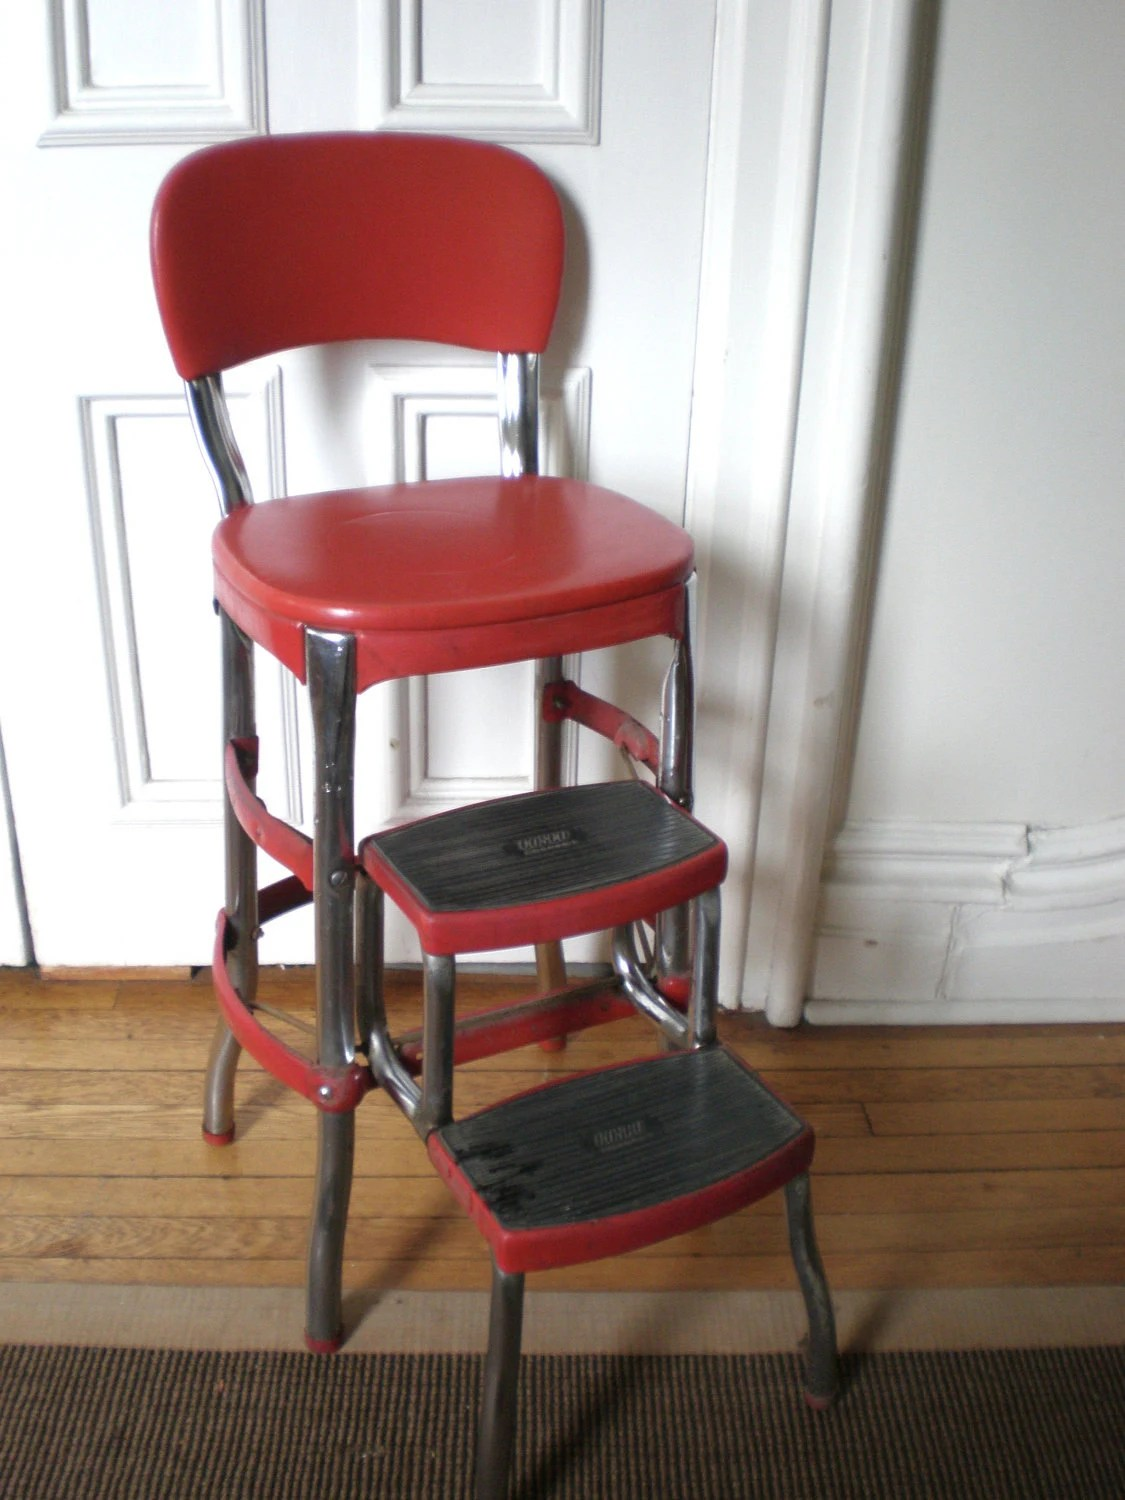 red cosco kitchen chair with step stool red kitchen chairs Red Cosco Kitchen Chair with Step Stool zoom